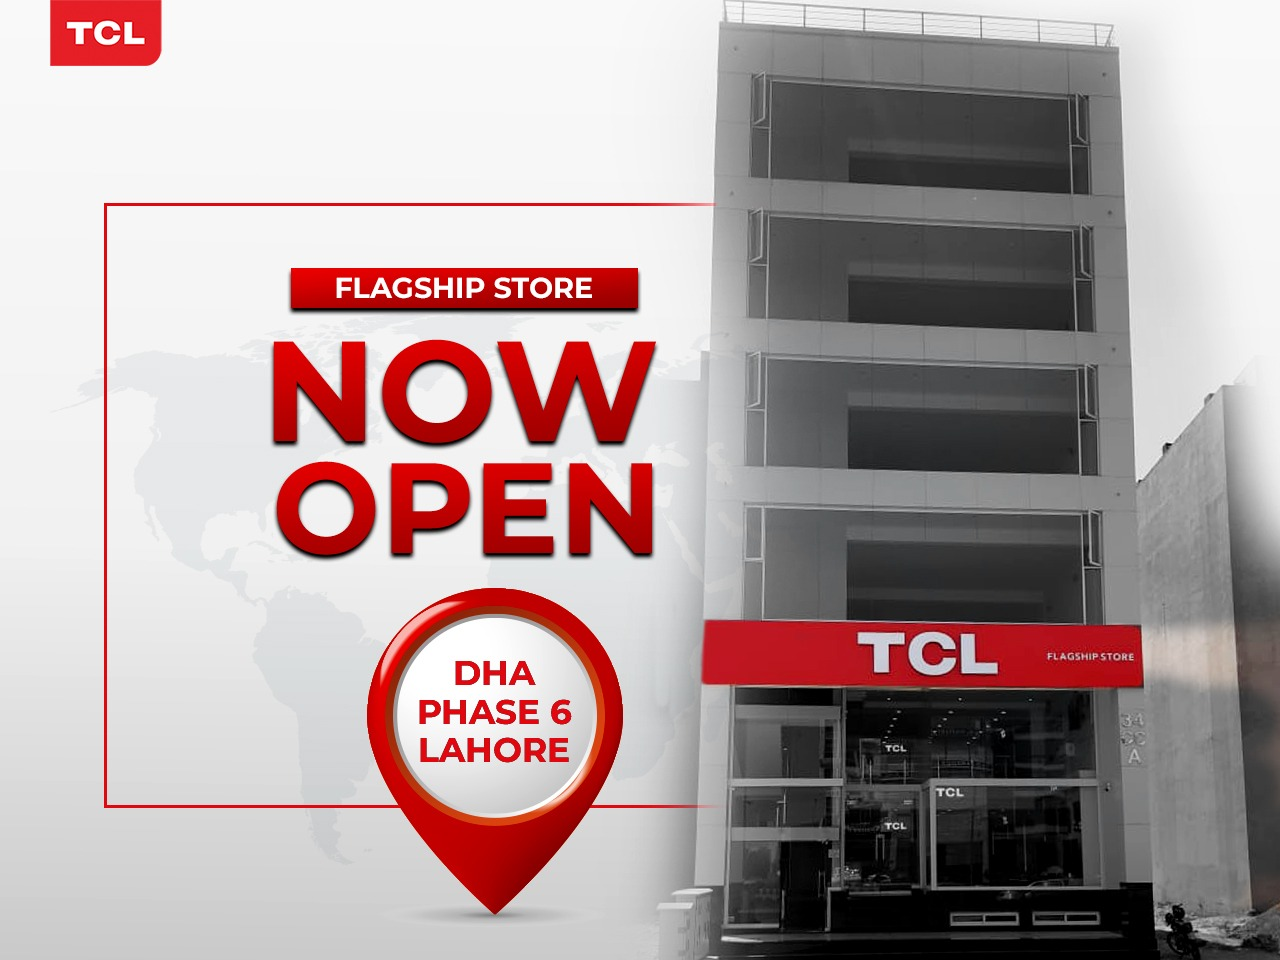 TCL Opens its 2nd Flagship Store in Lahore